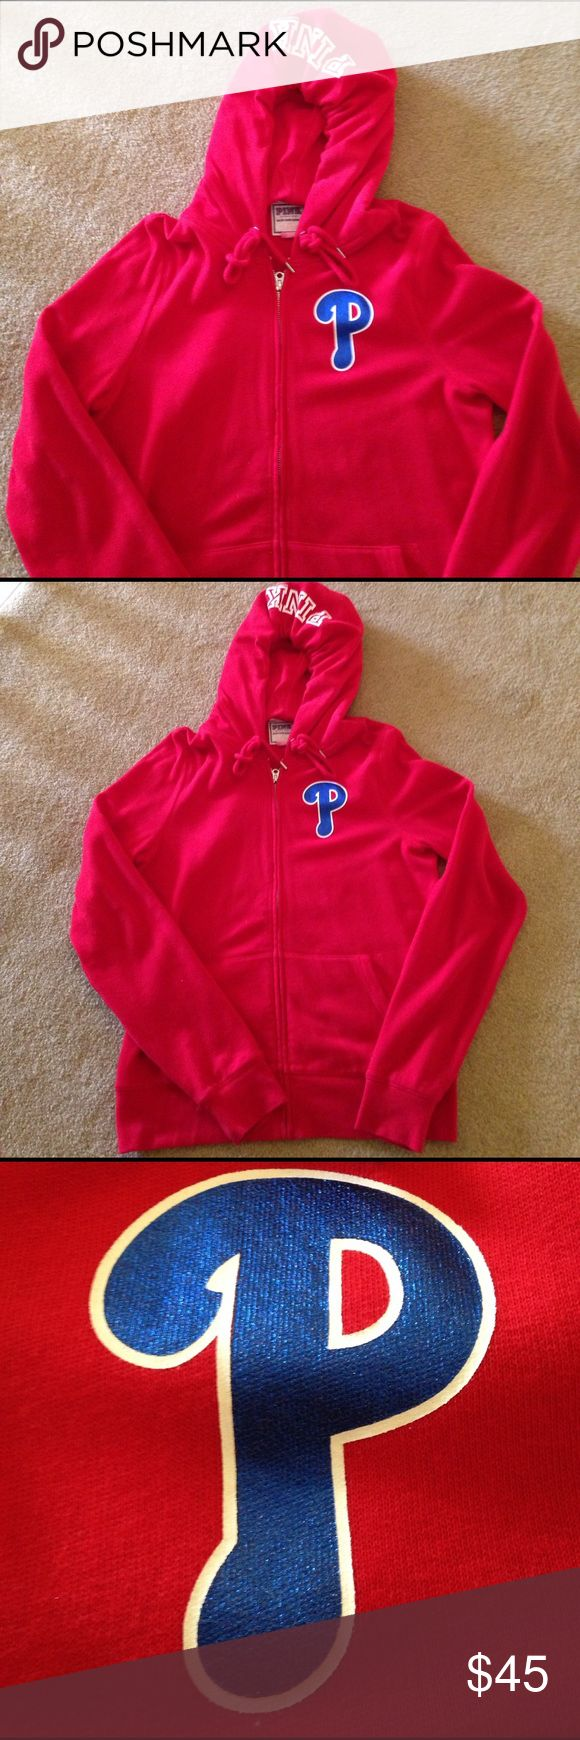 ⚾️Victoria Secret PINK Phillies Sweatshirt⚾️ ⚾️Worn once/Brand New condition ⚾️never washed⚾️60% Cotton and 40% Polyester⚾️Metallic blue and white screen print on red hoodie zip up sweatshirt⚾️ PINK Victoria's Secret Tops Sweatshirts & Hoodies